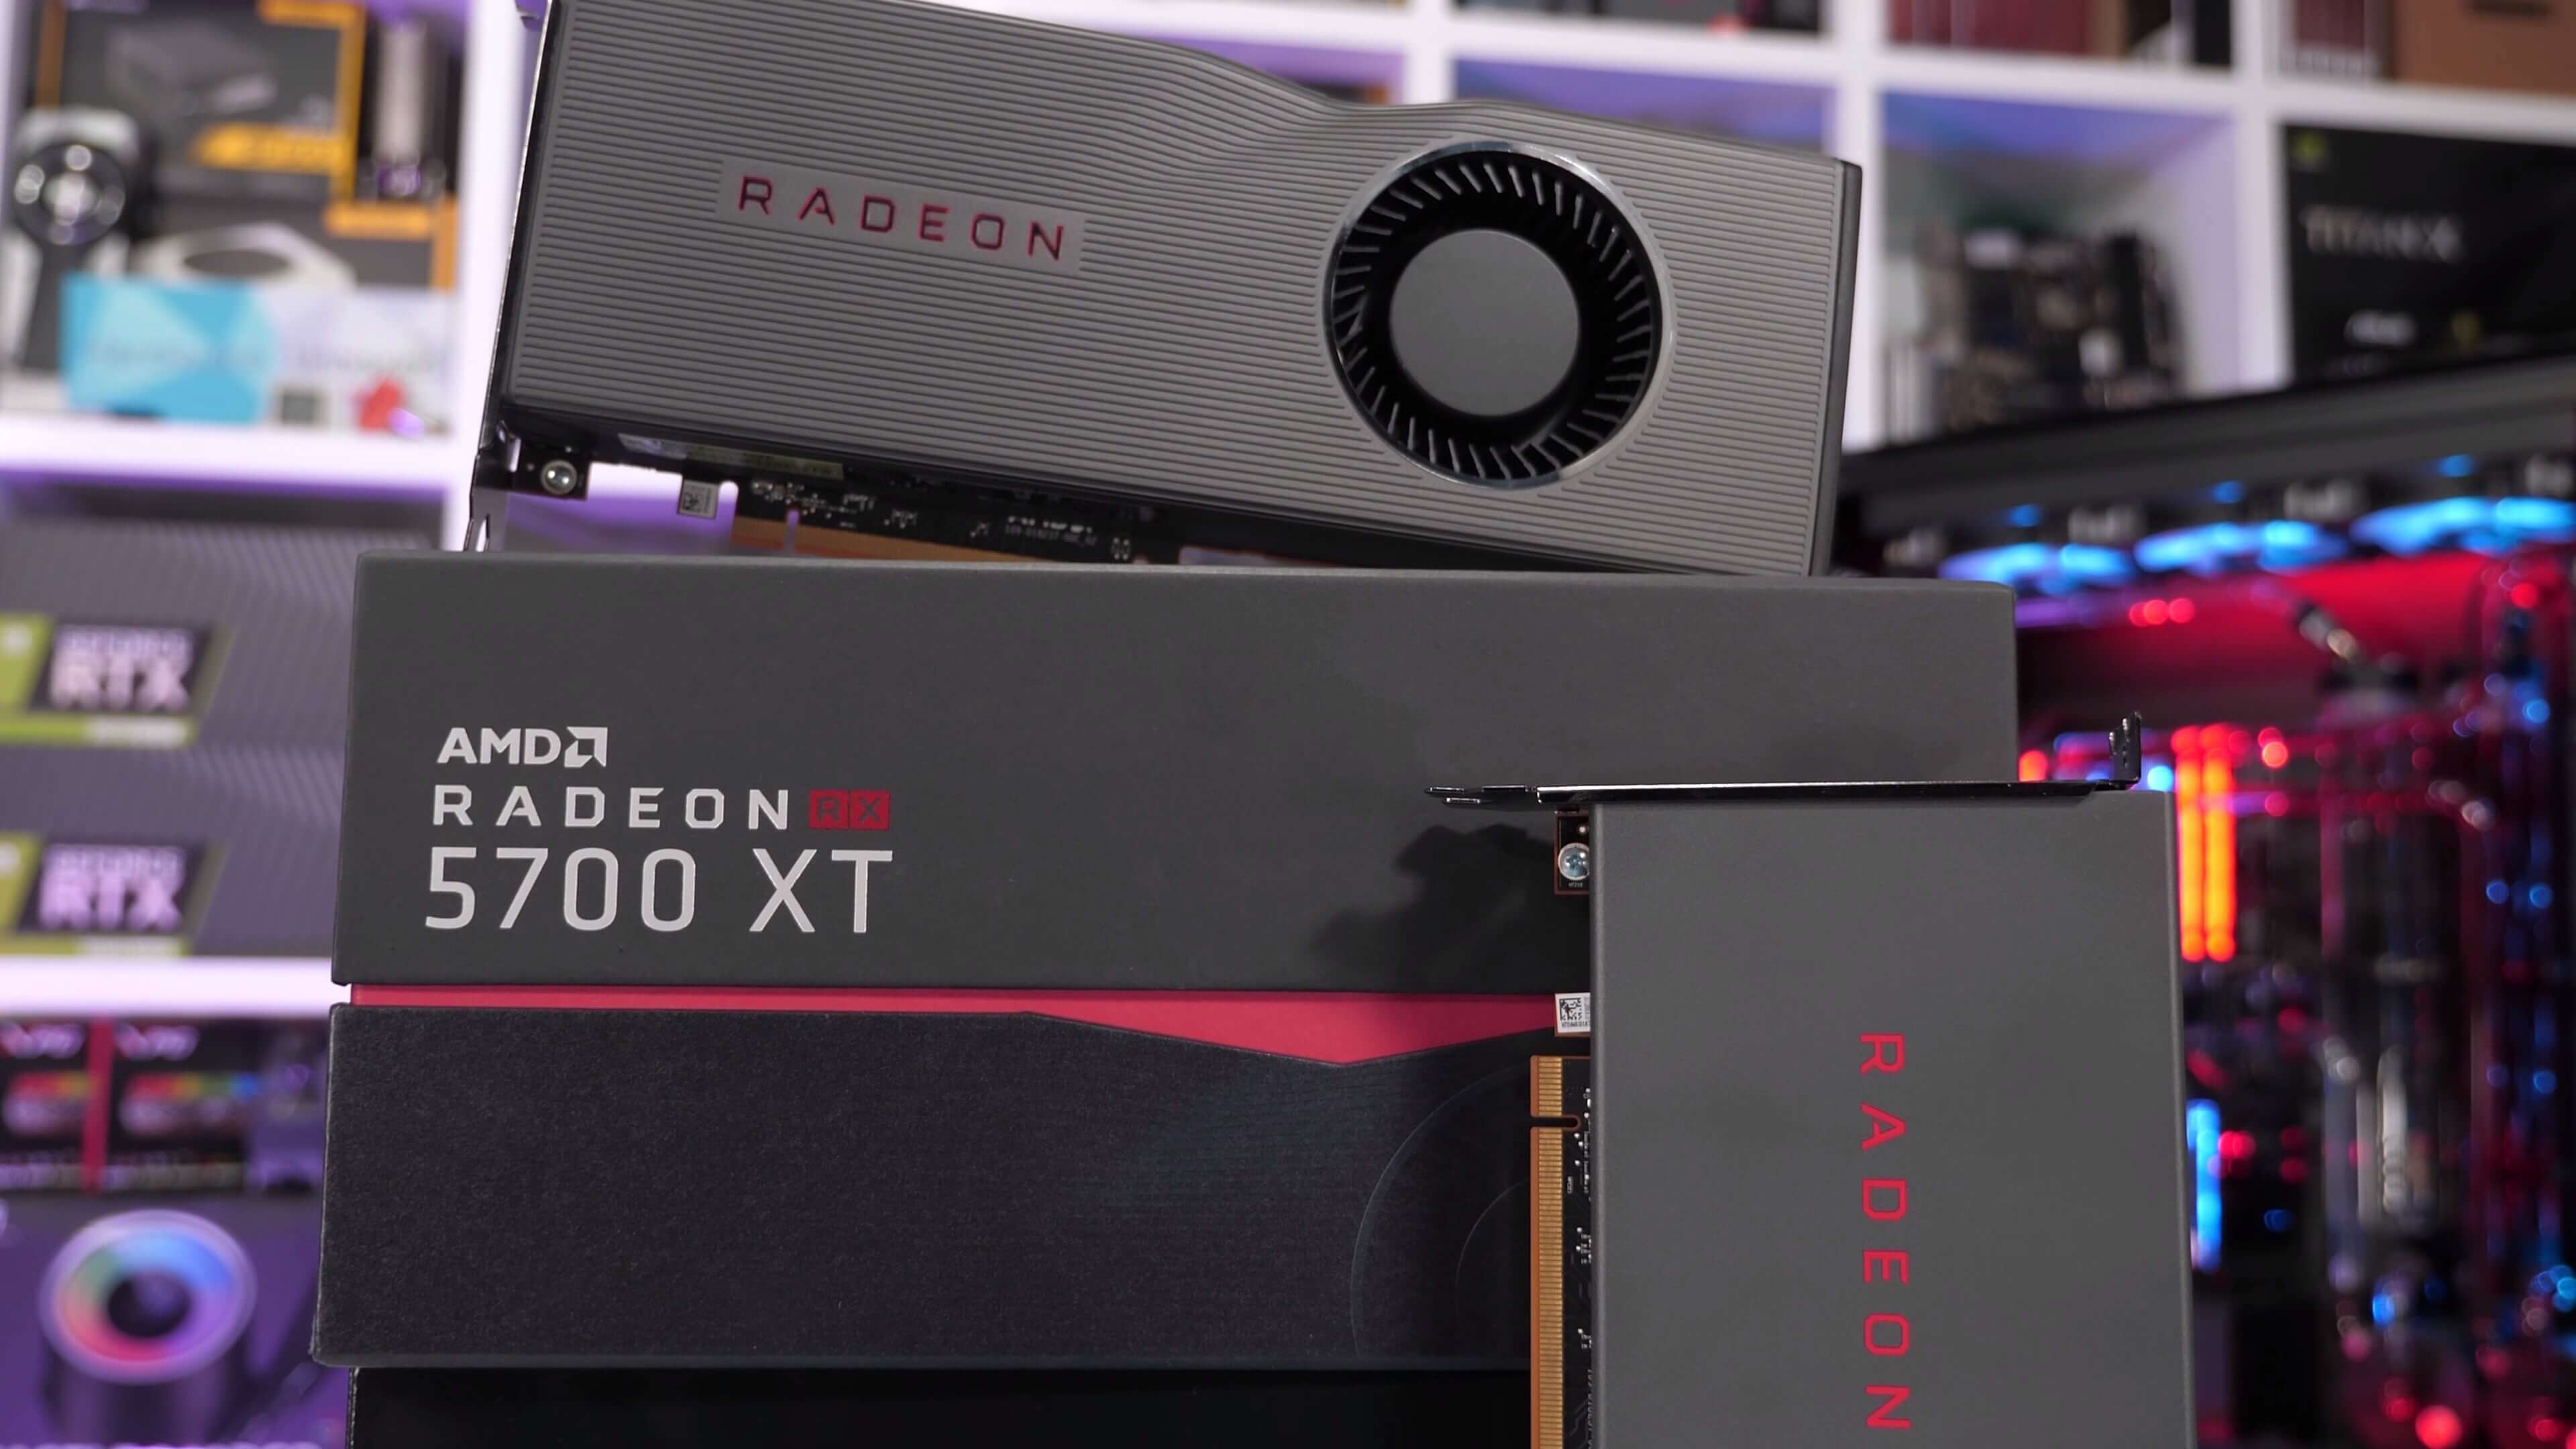 Amd Radeon Rx 5700 Xt And Rx 5700 Review